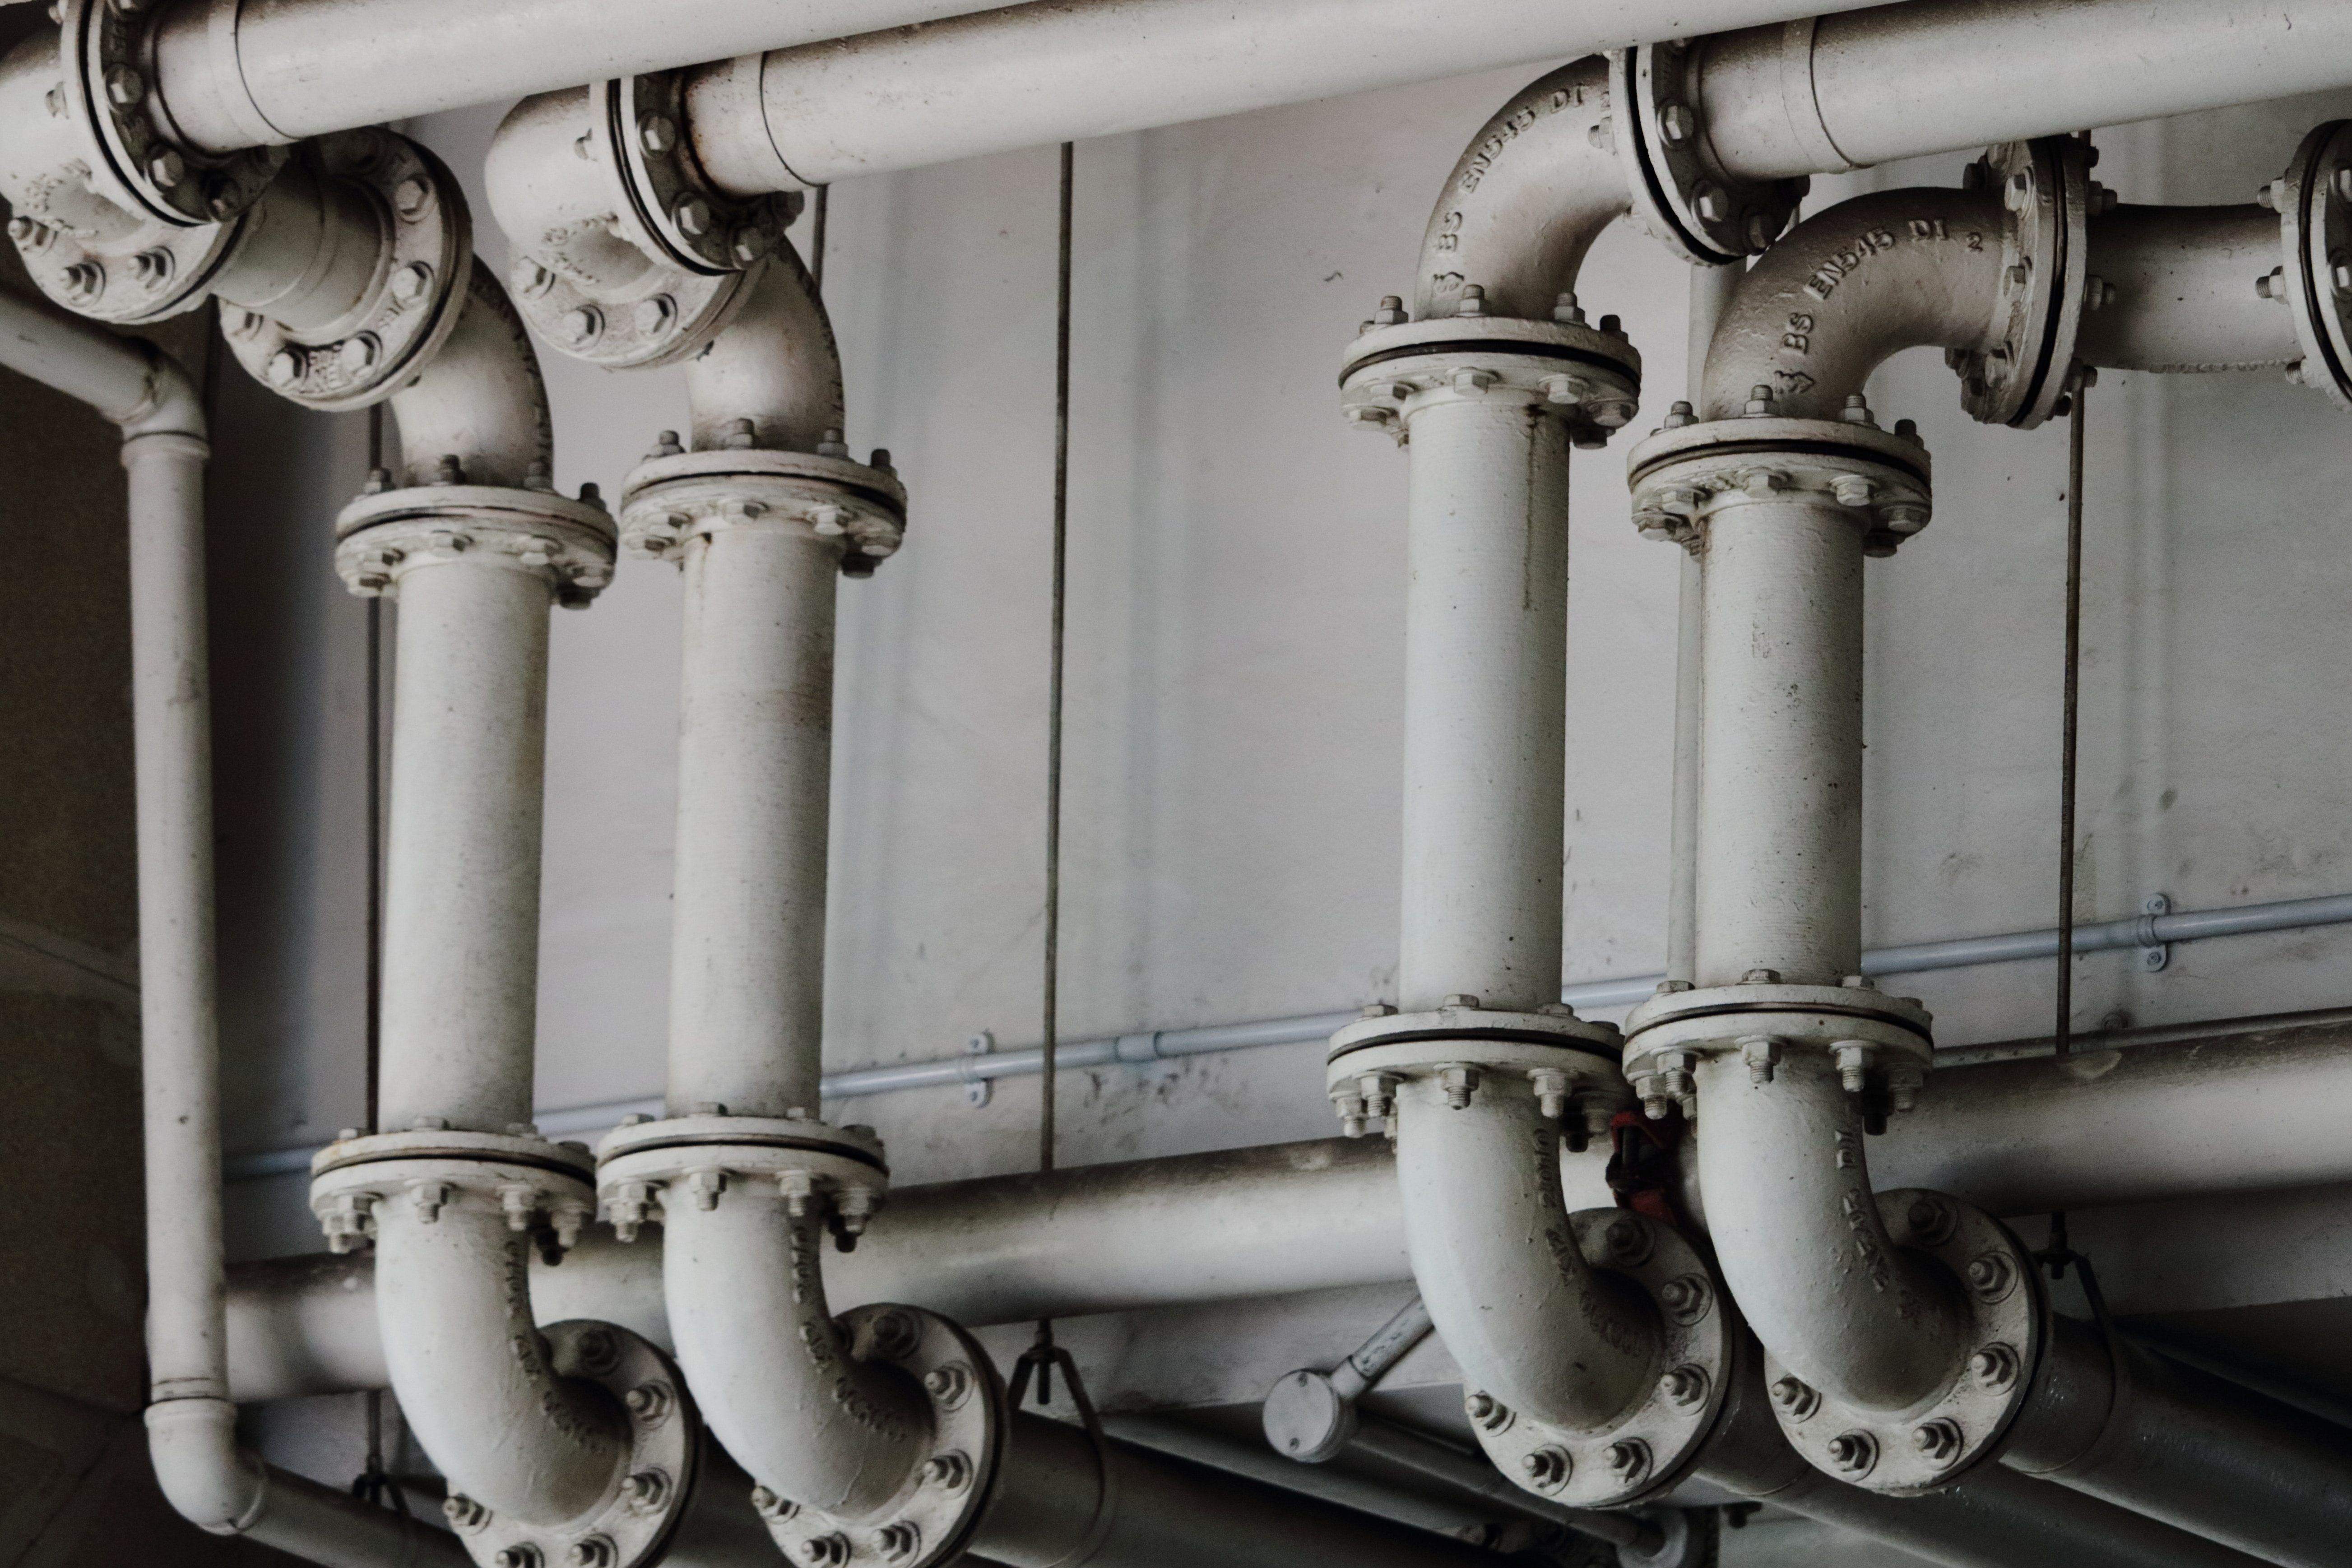 insulate your pipes